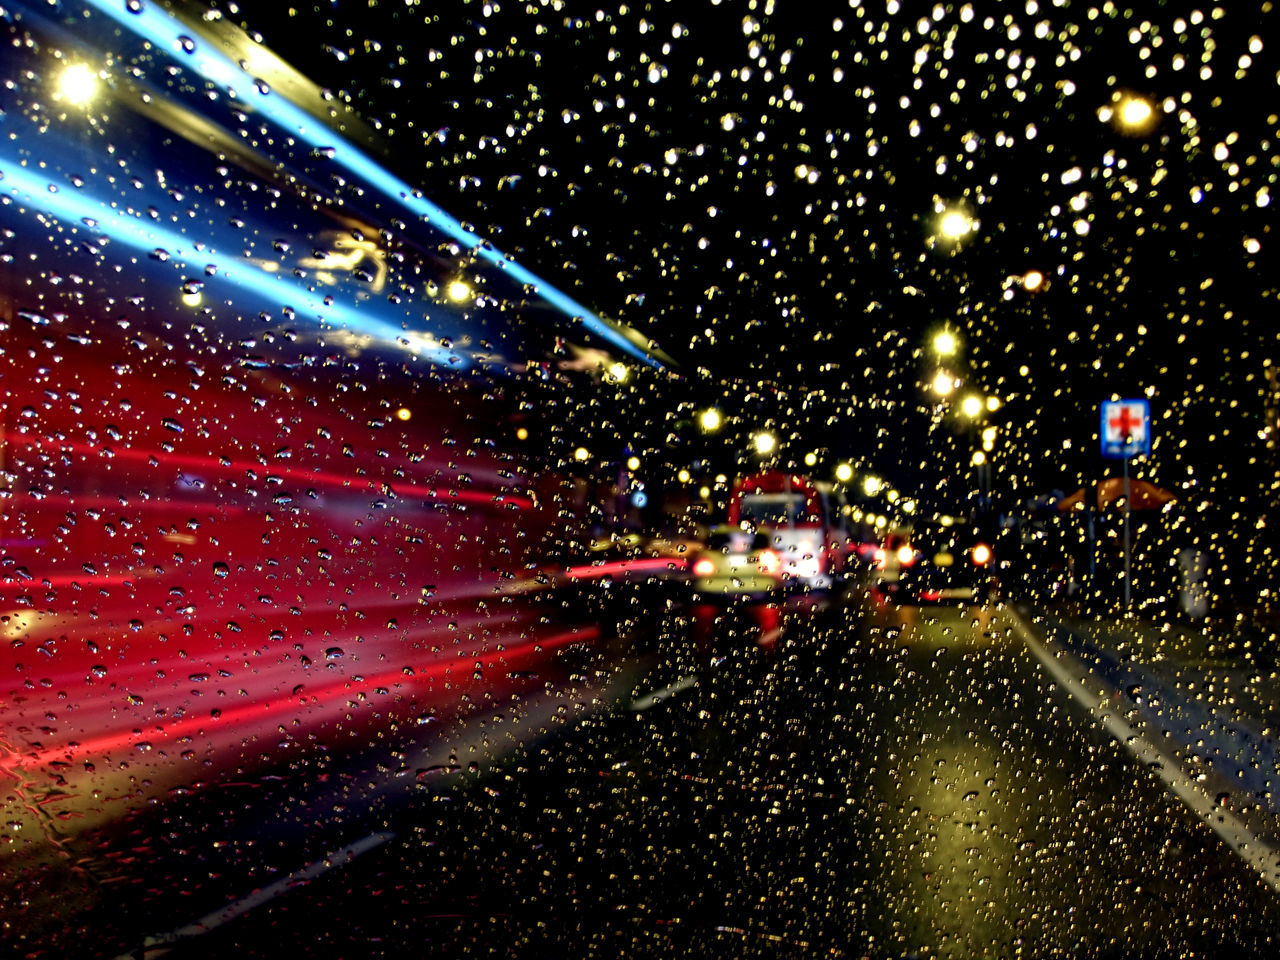 Water Drops On Windshield At Night